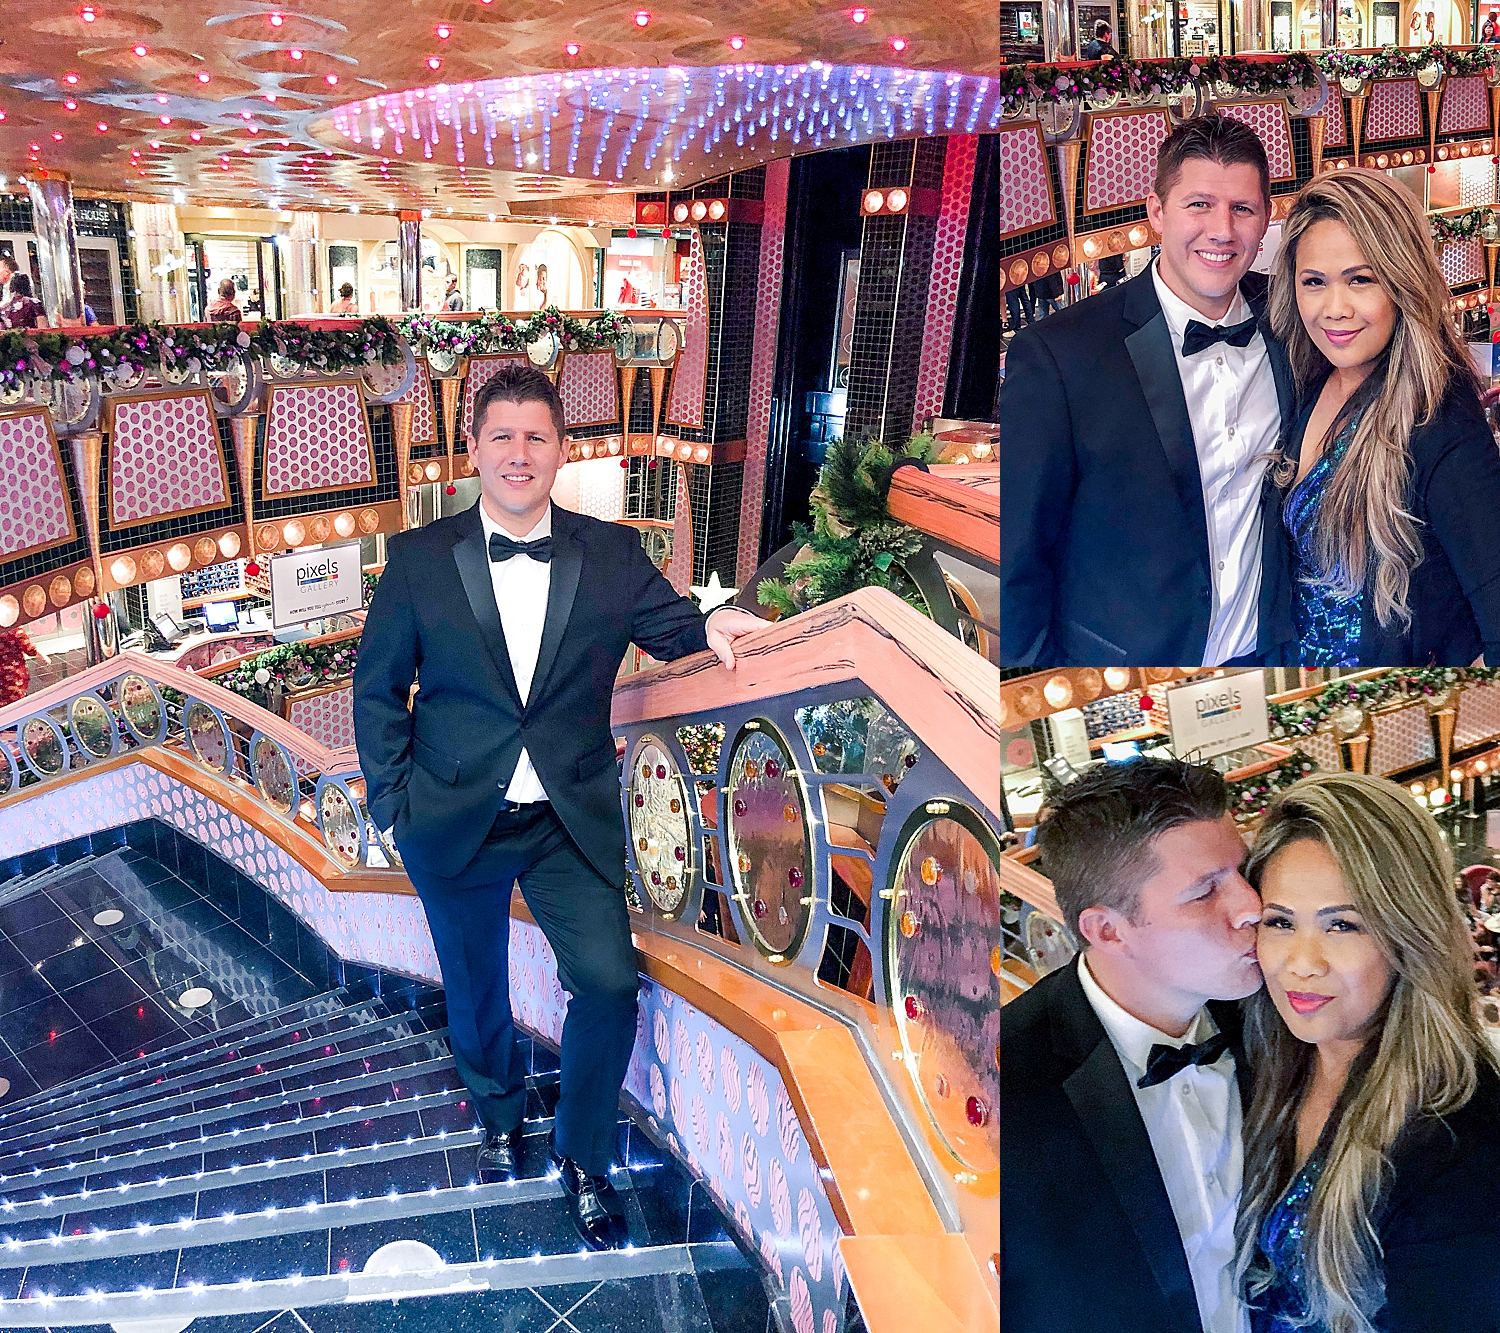 Cruise Elegant night on the Carnival Splendor. Selfies of Jade and Kevin Urness.